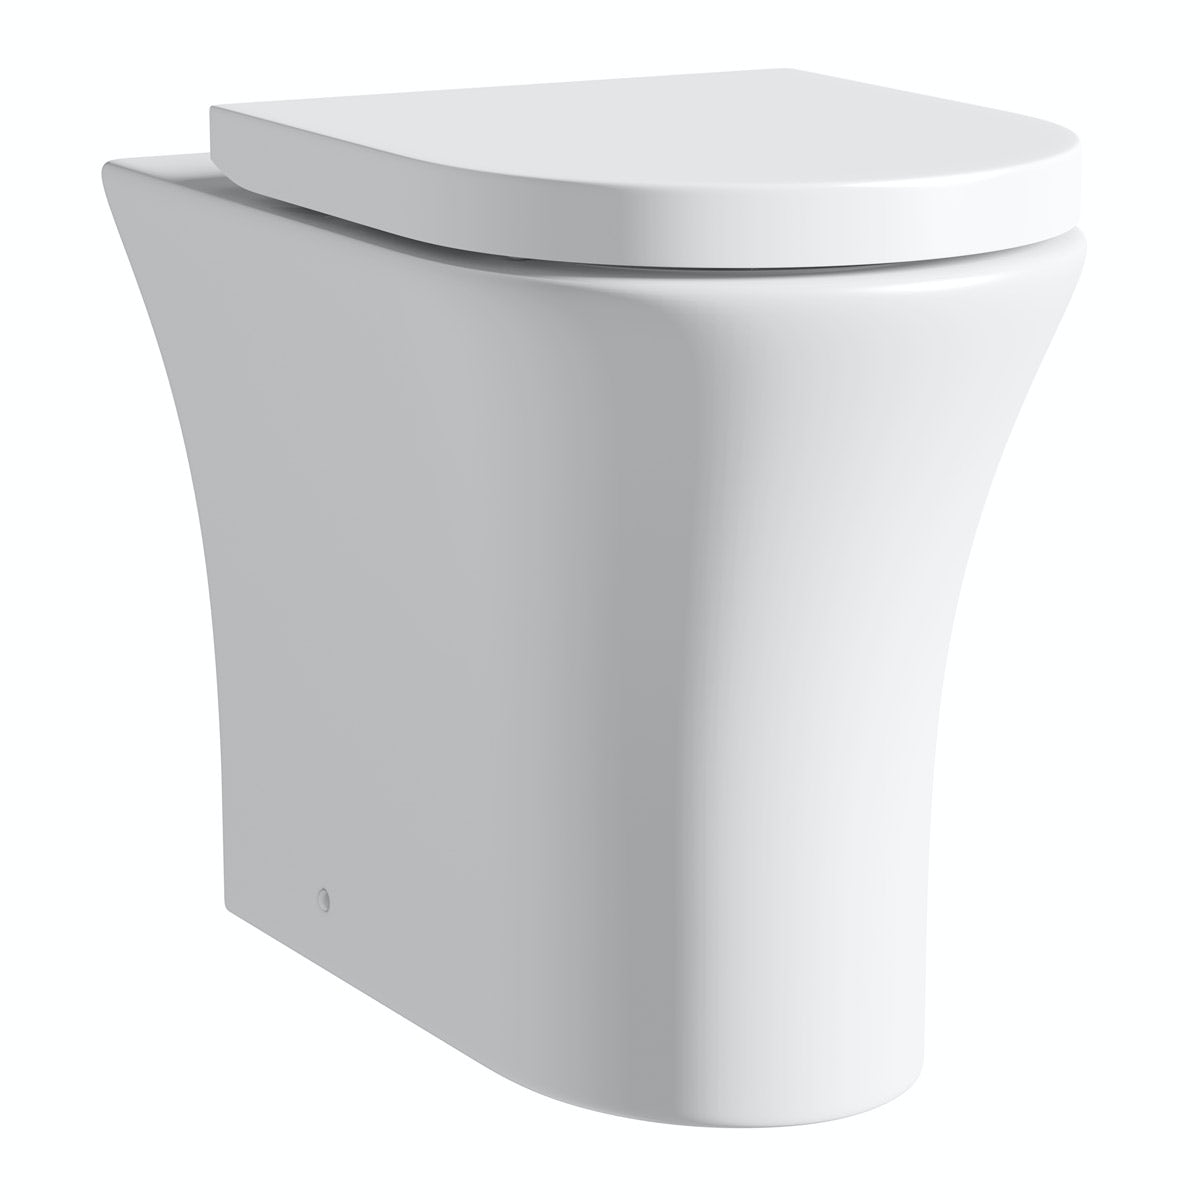 Mode Hardy rimless back to wall toilet with soft close seat